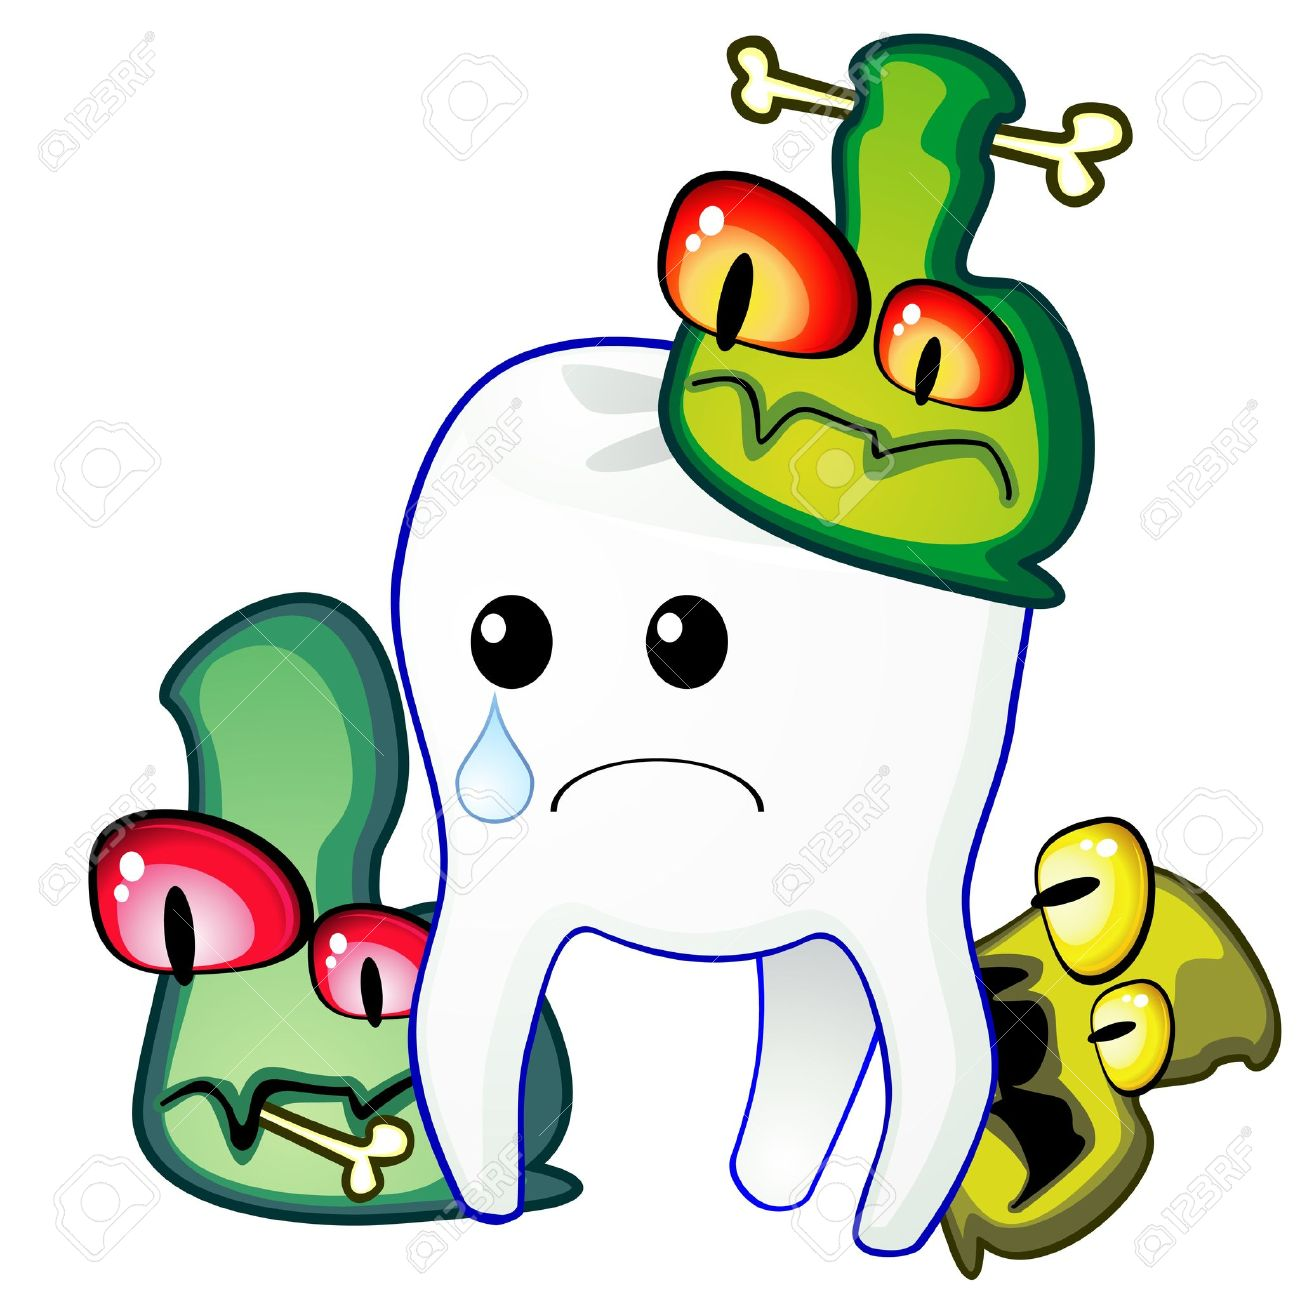 7,226 Caries Cliparts, Stock Vector And Royalty Free Caries.